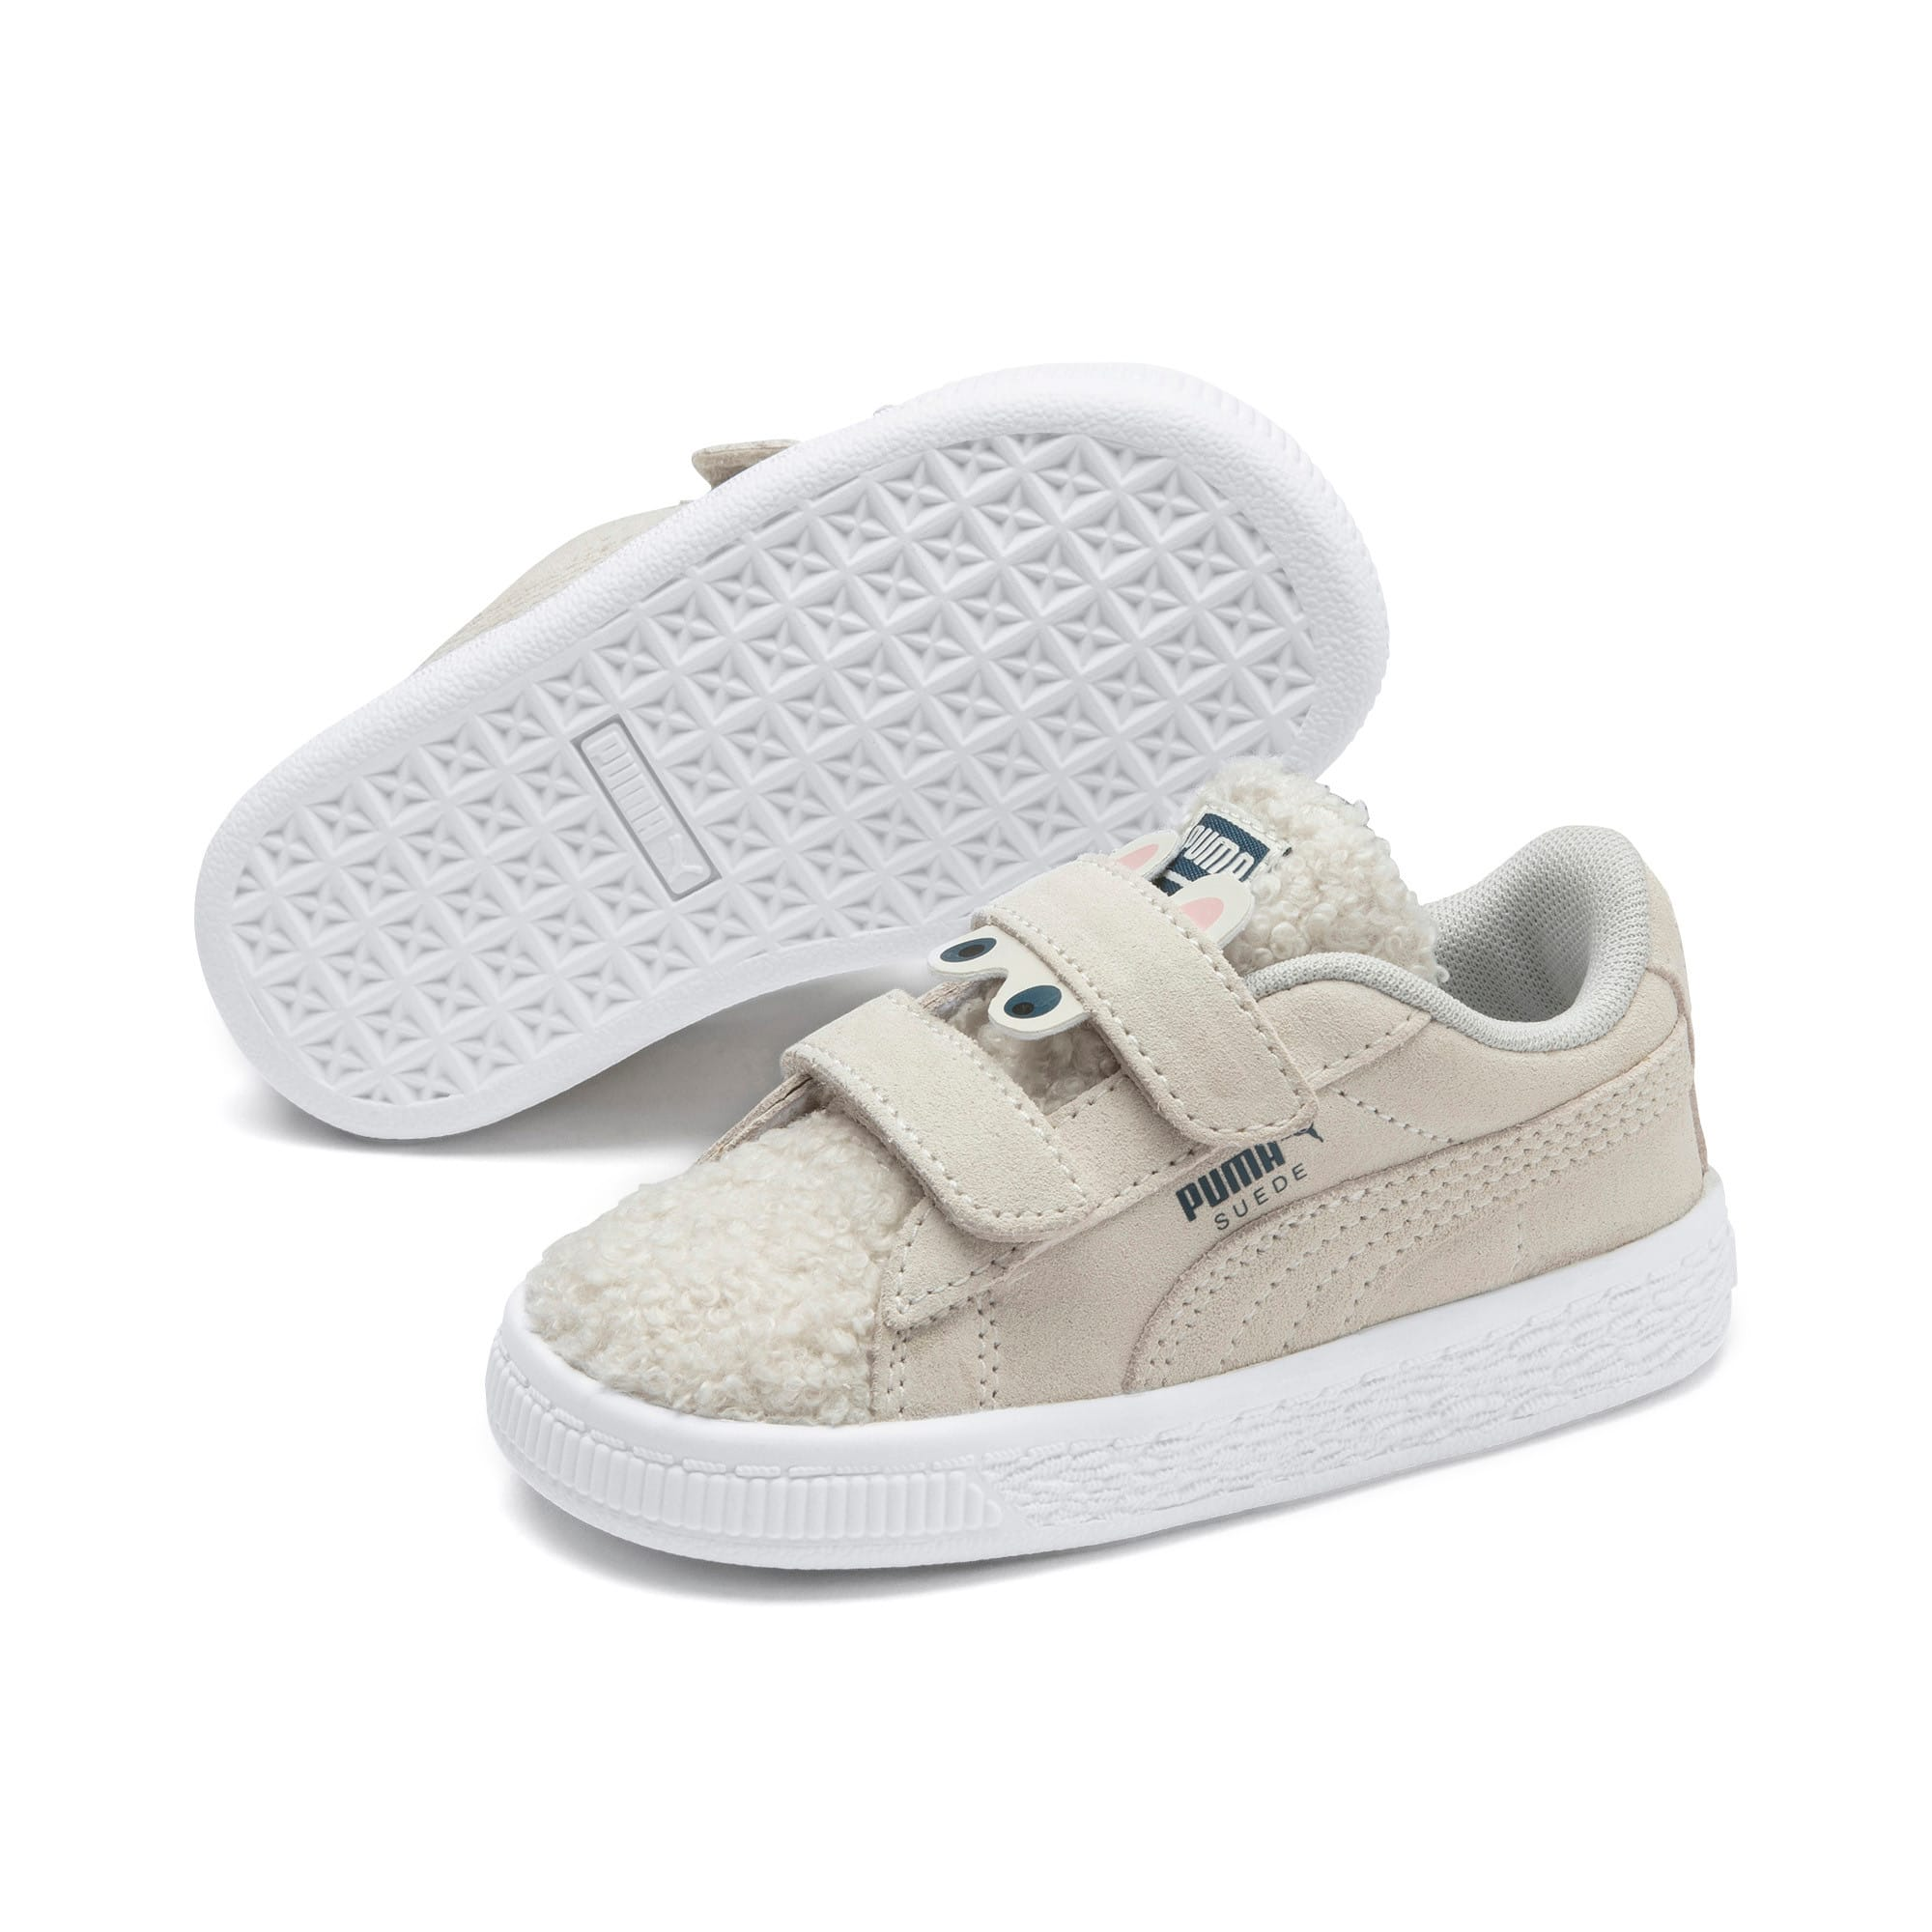 Thumbnail 2 of Suede Winter Monster Babies' Trainers, Whisper White-Gibraltar Sea, medium